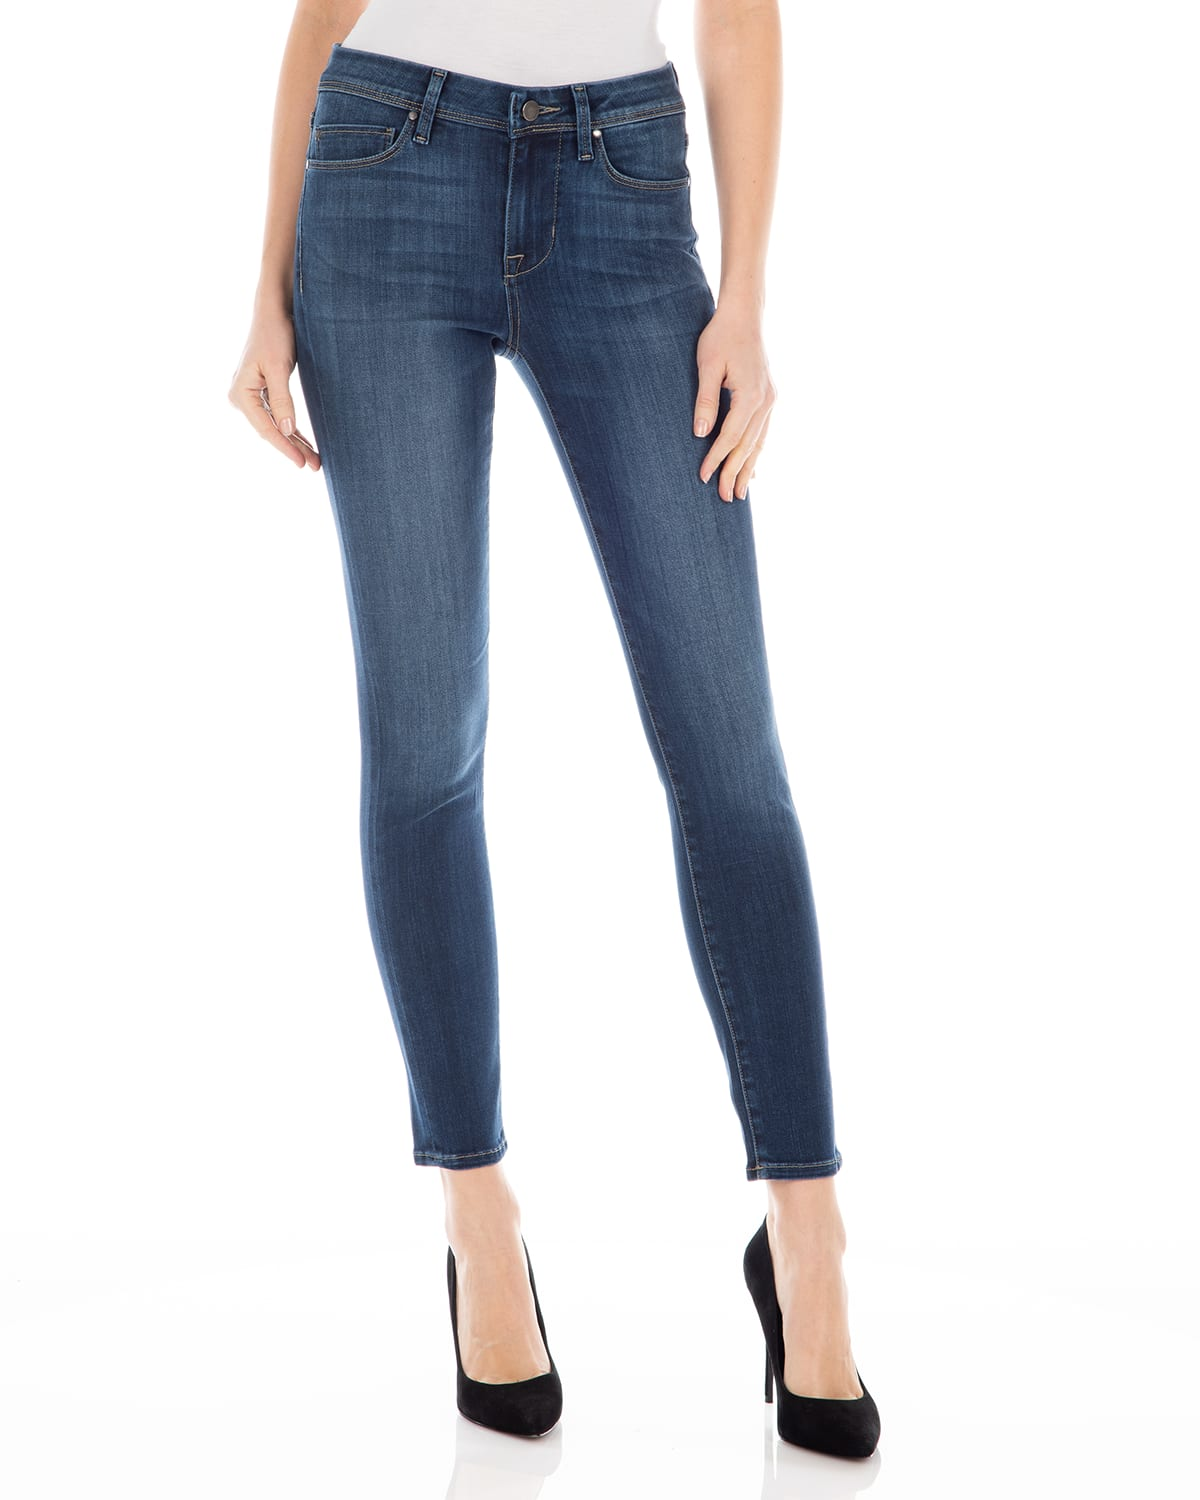 Sola Mid-Rise Skinny Jeans